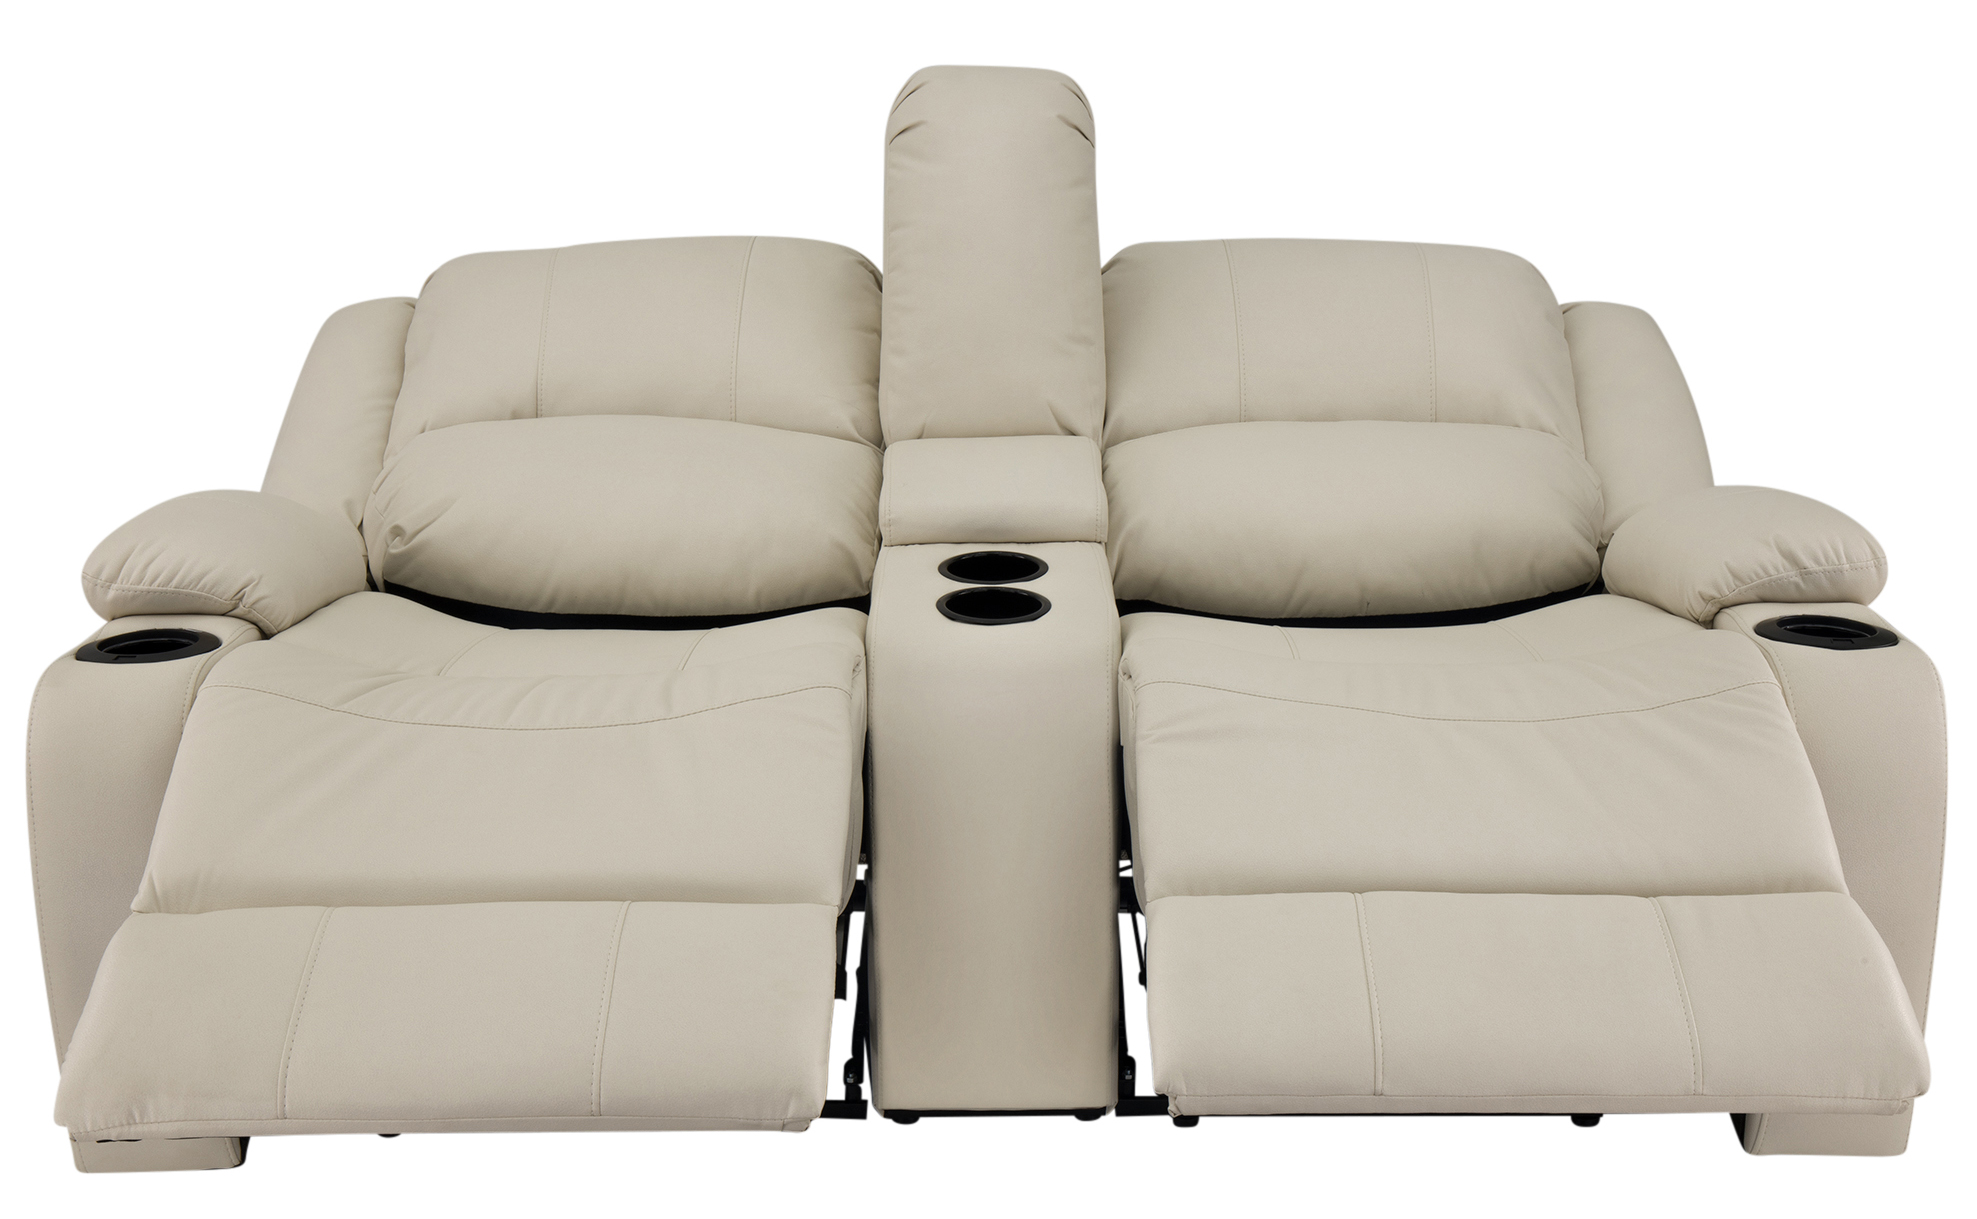 Charles 67 RV Recliner Sofa with Console